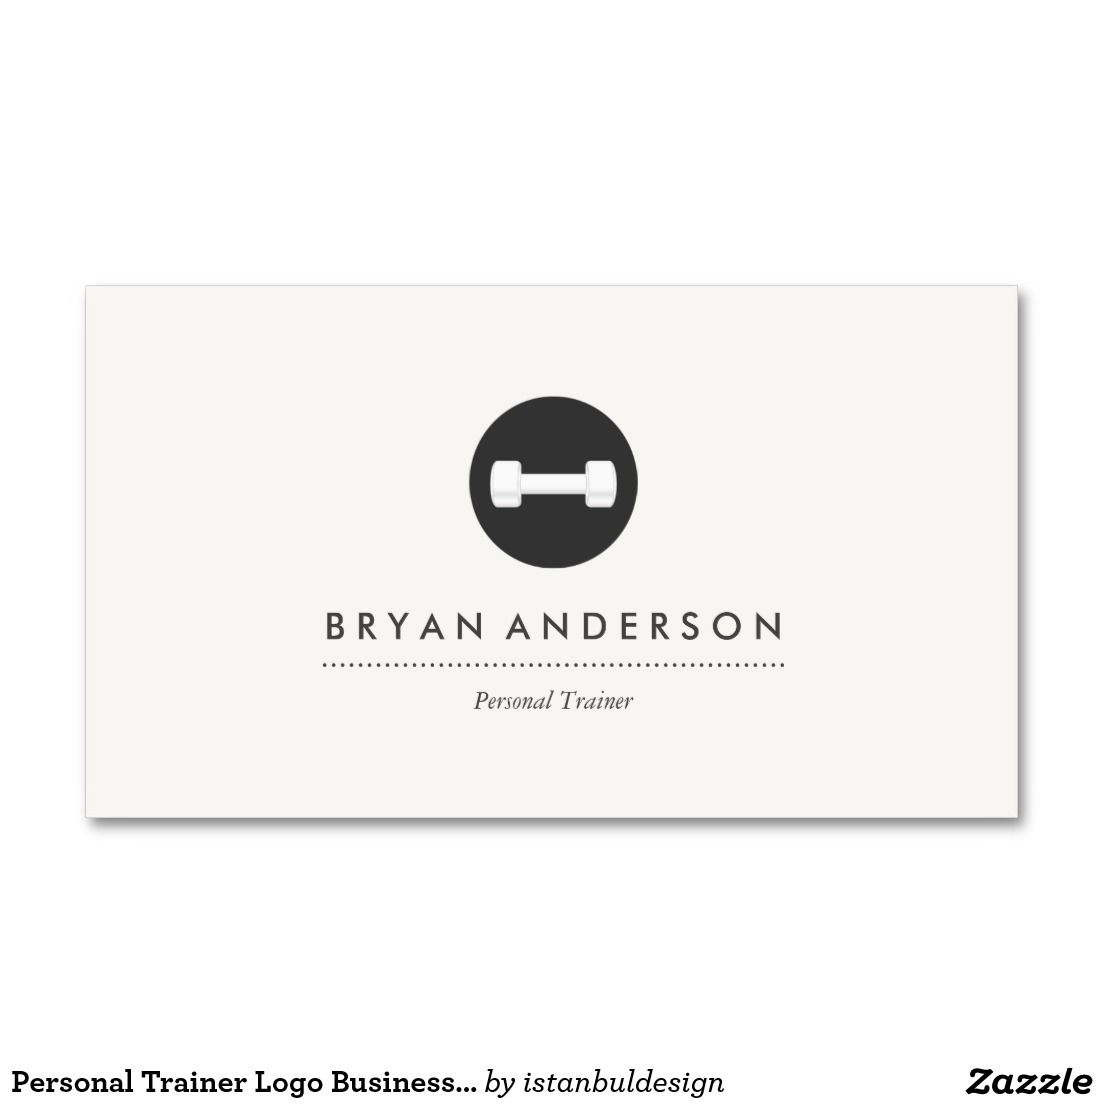 Personal Trainer Logo Business Card | Business cards, Logos and ...